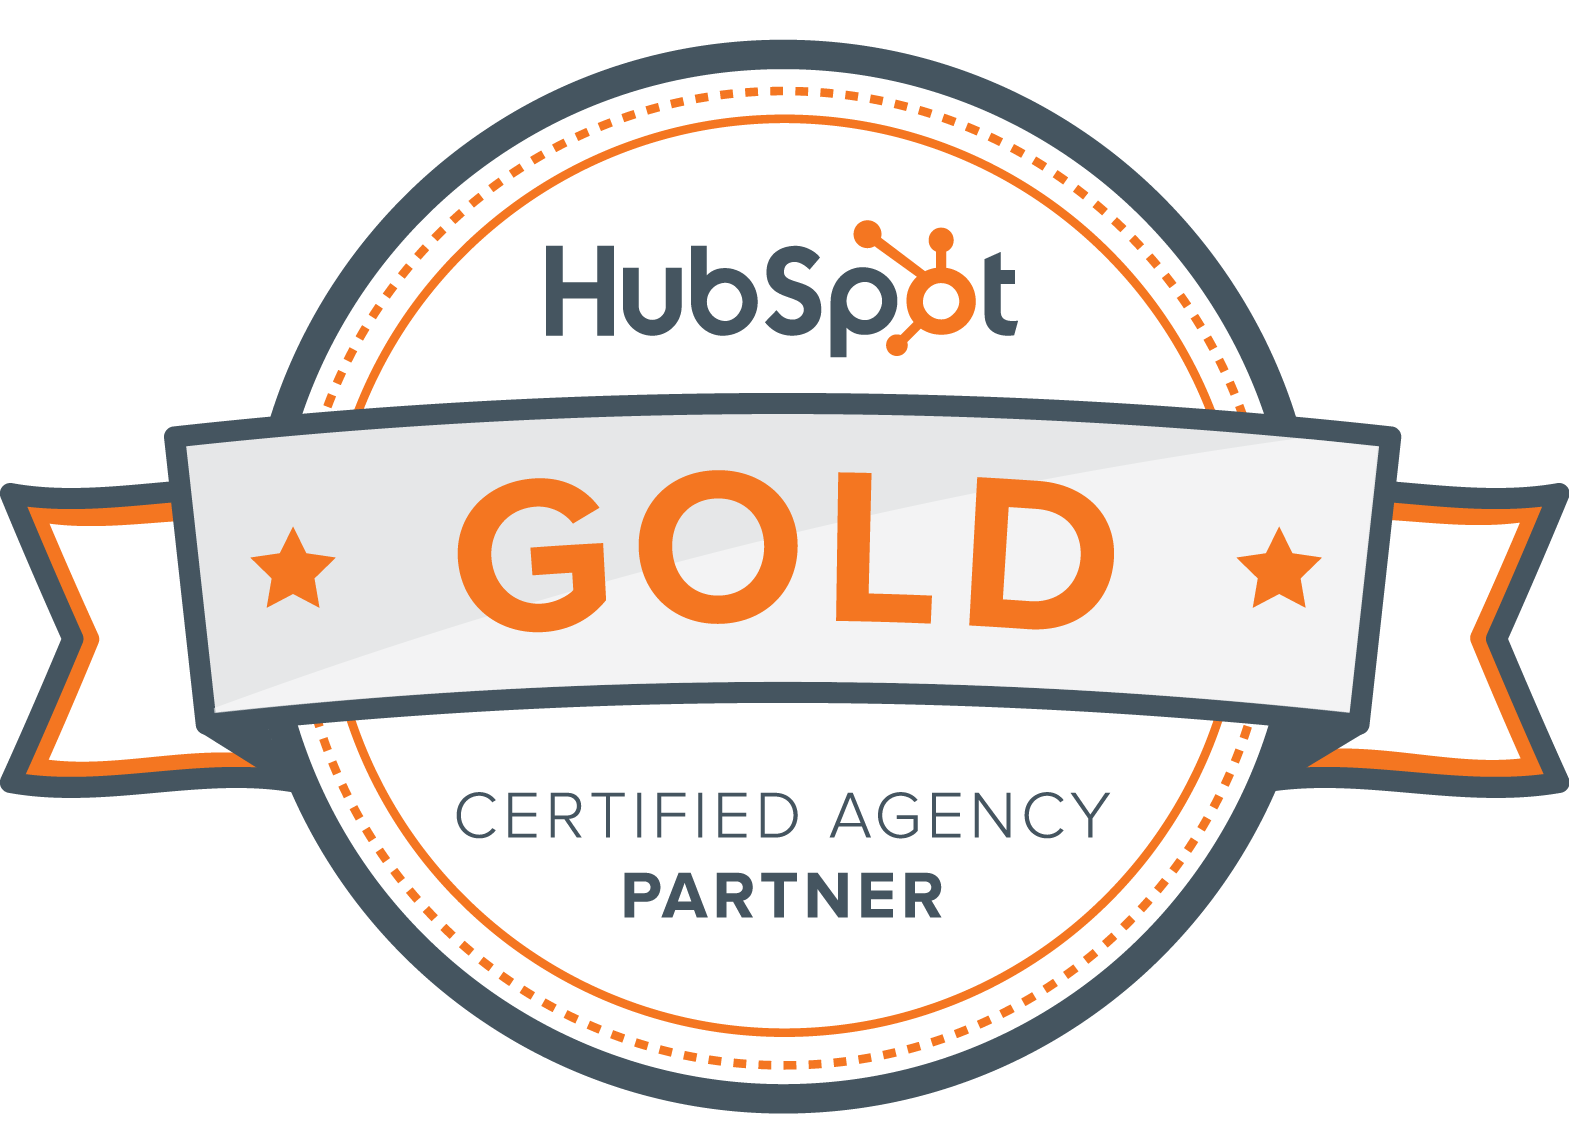 BRISTOL STRATEGY BECOMES A HUBSPOT GOLD CERTIFIED AGENCY